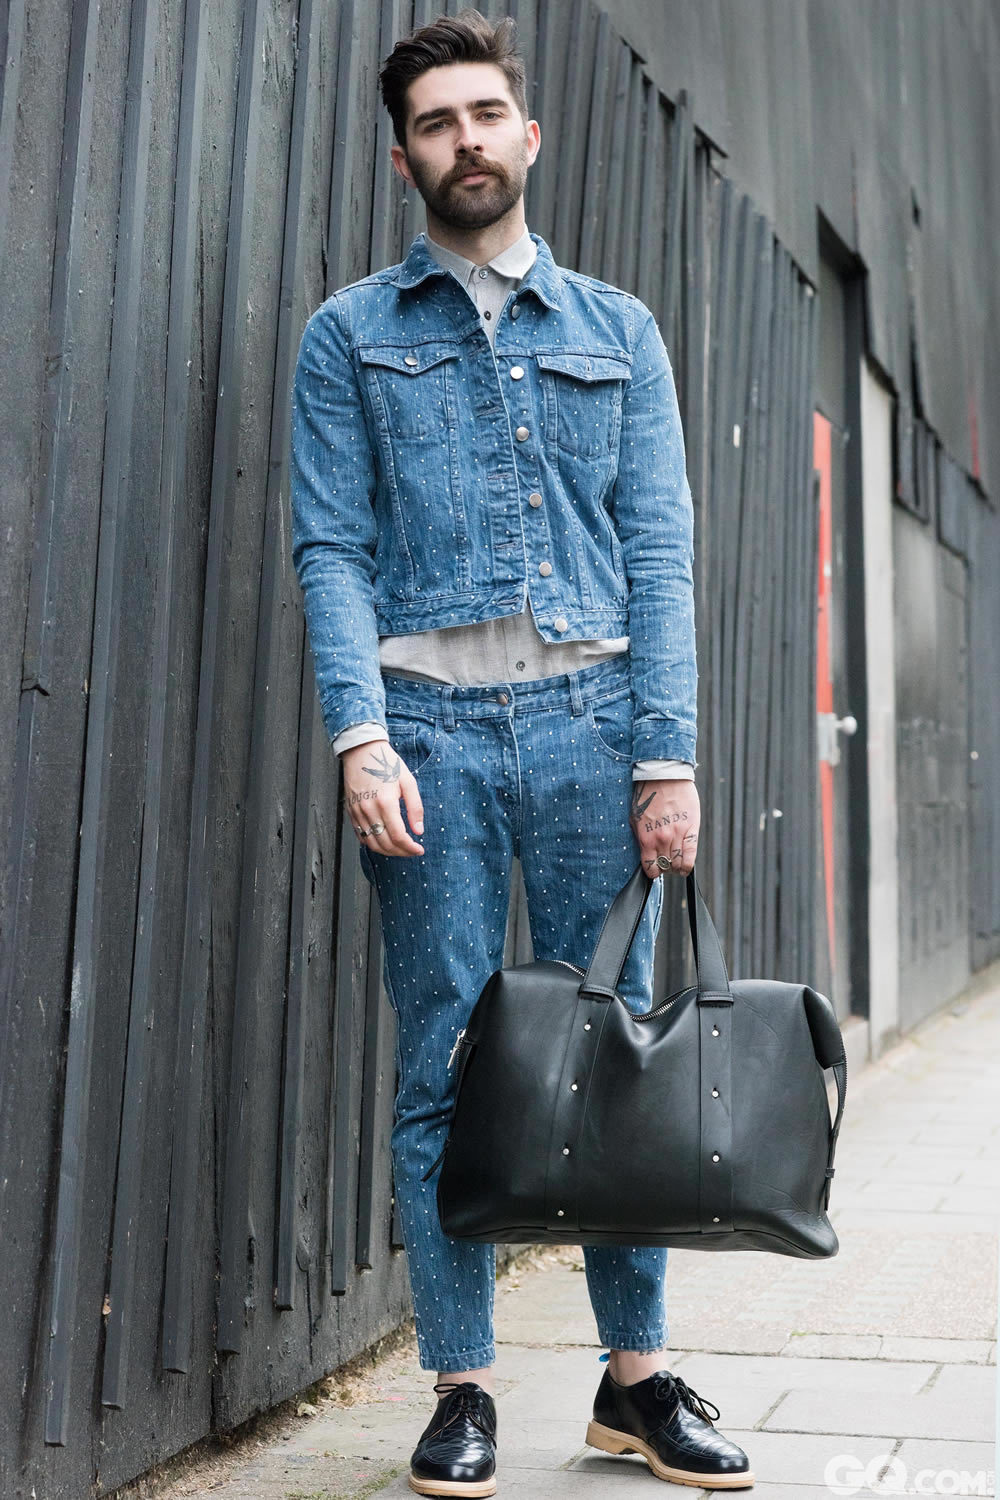 Chris All Look: YMC Bag: Zara  Inspiration: For today, I wanted to try something different. Usually I go for something Scandinavian and toned down. This is a little different. Plus I like denim and polka dots.  (今天我想尝试一些不一样的东西,通常我的风格比较斯堪的纳维亚和淡色感,但这次有些不同,顺便提一下,我喜欢丹宁和波点元素)